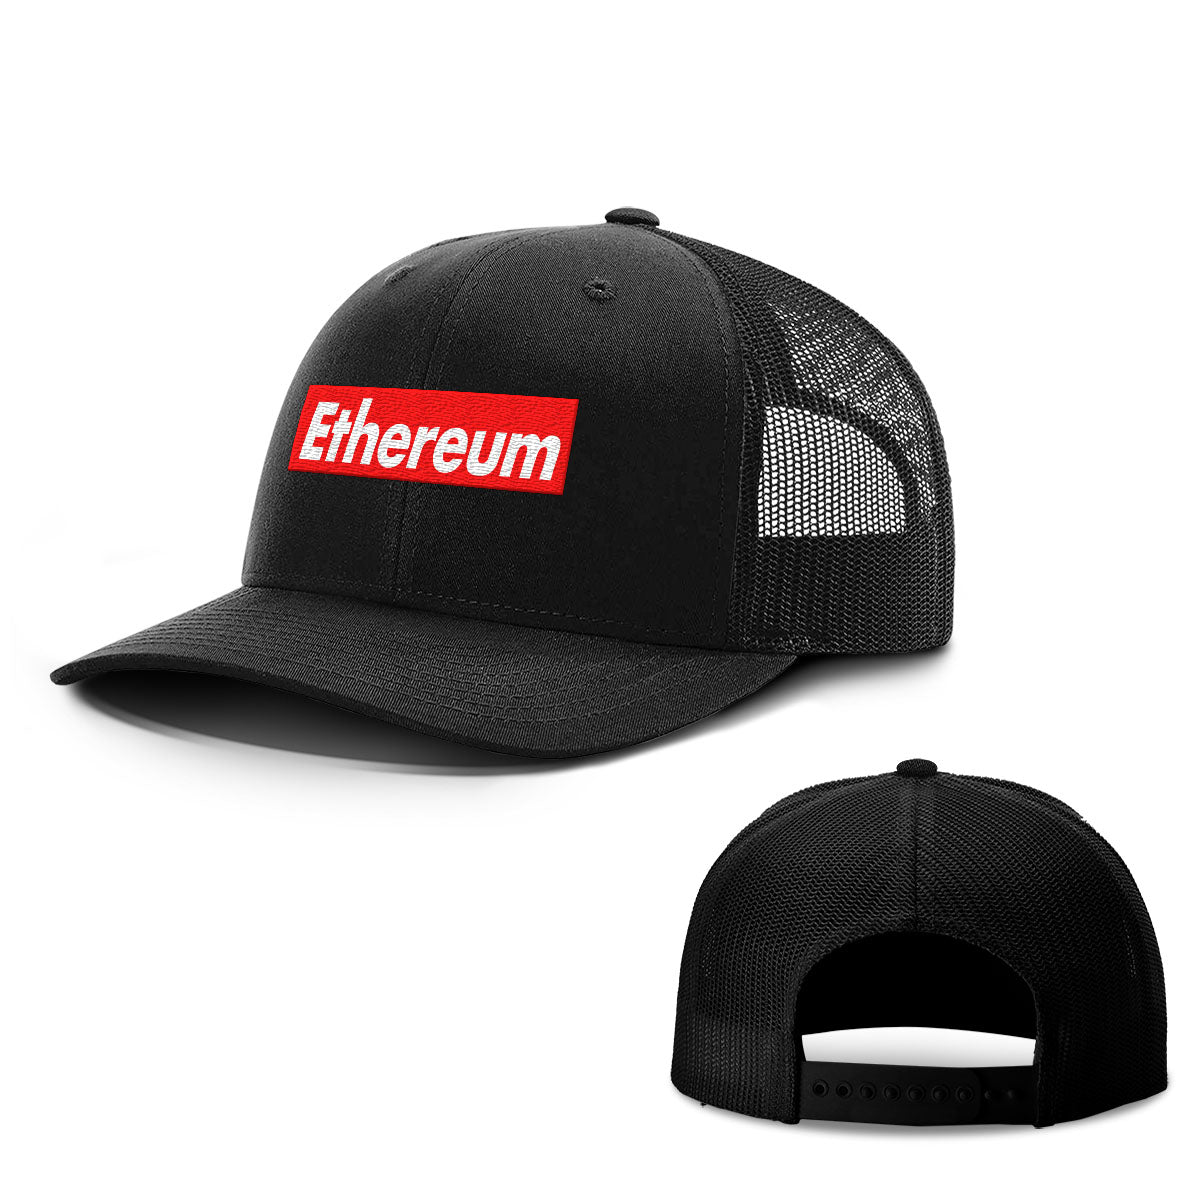 Ethereum Red Hats